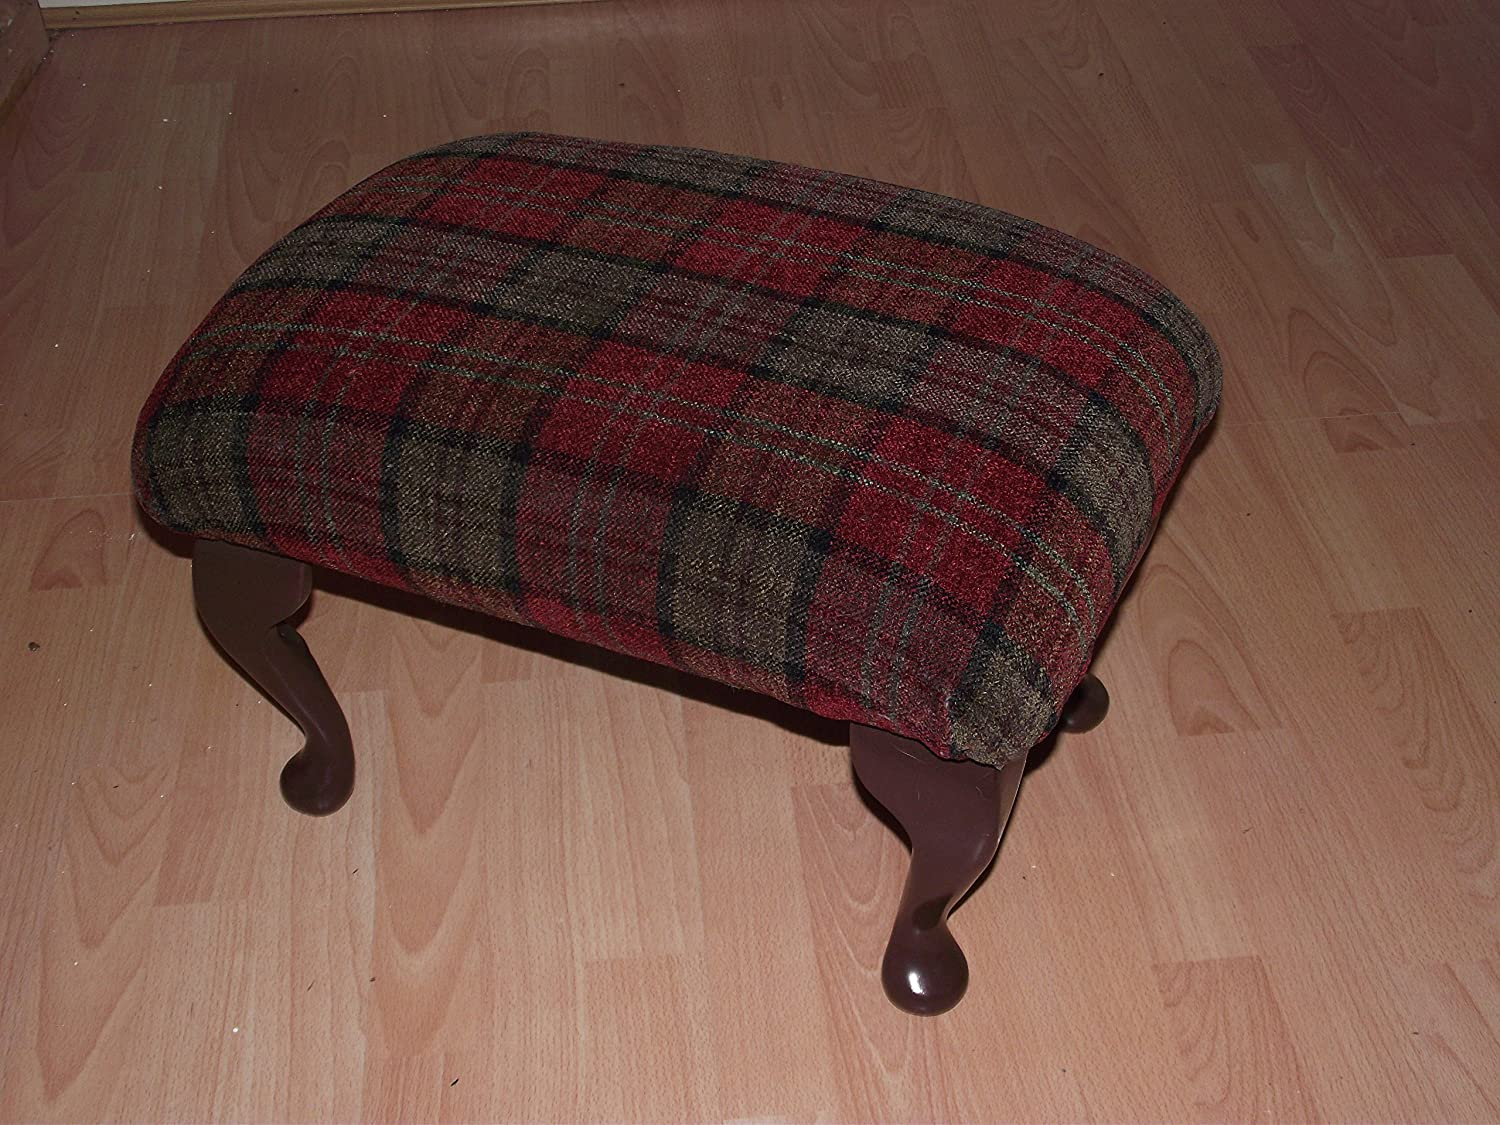 Luxury footstool in traditional red tartan fabric  Queen anne style legs  and thick upholstered foam top pouffe